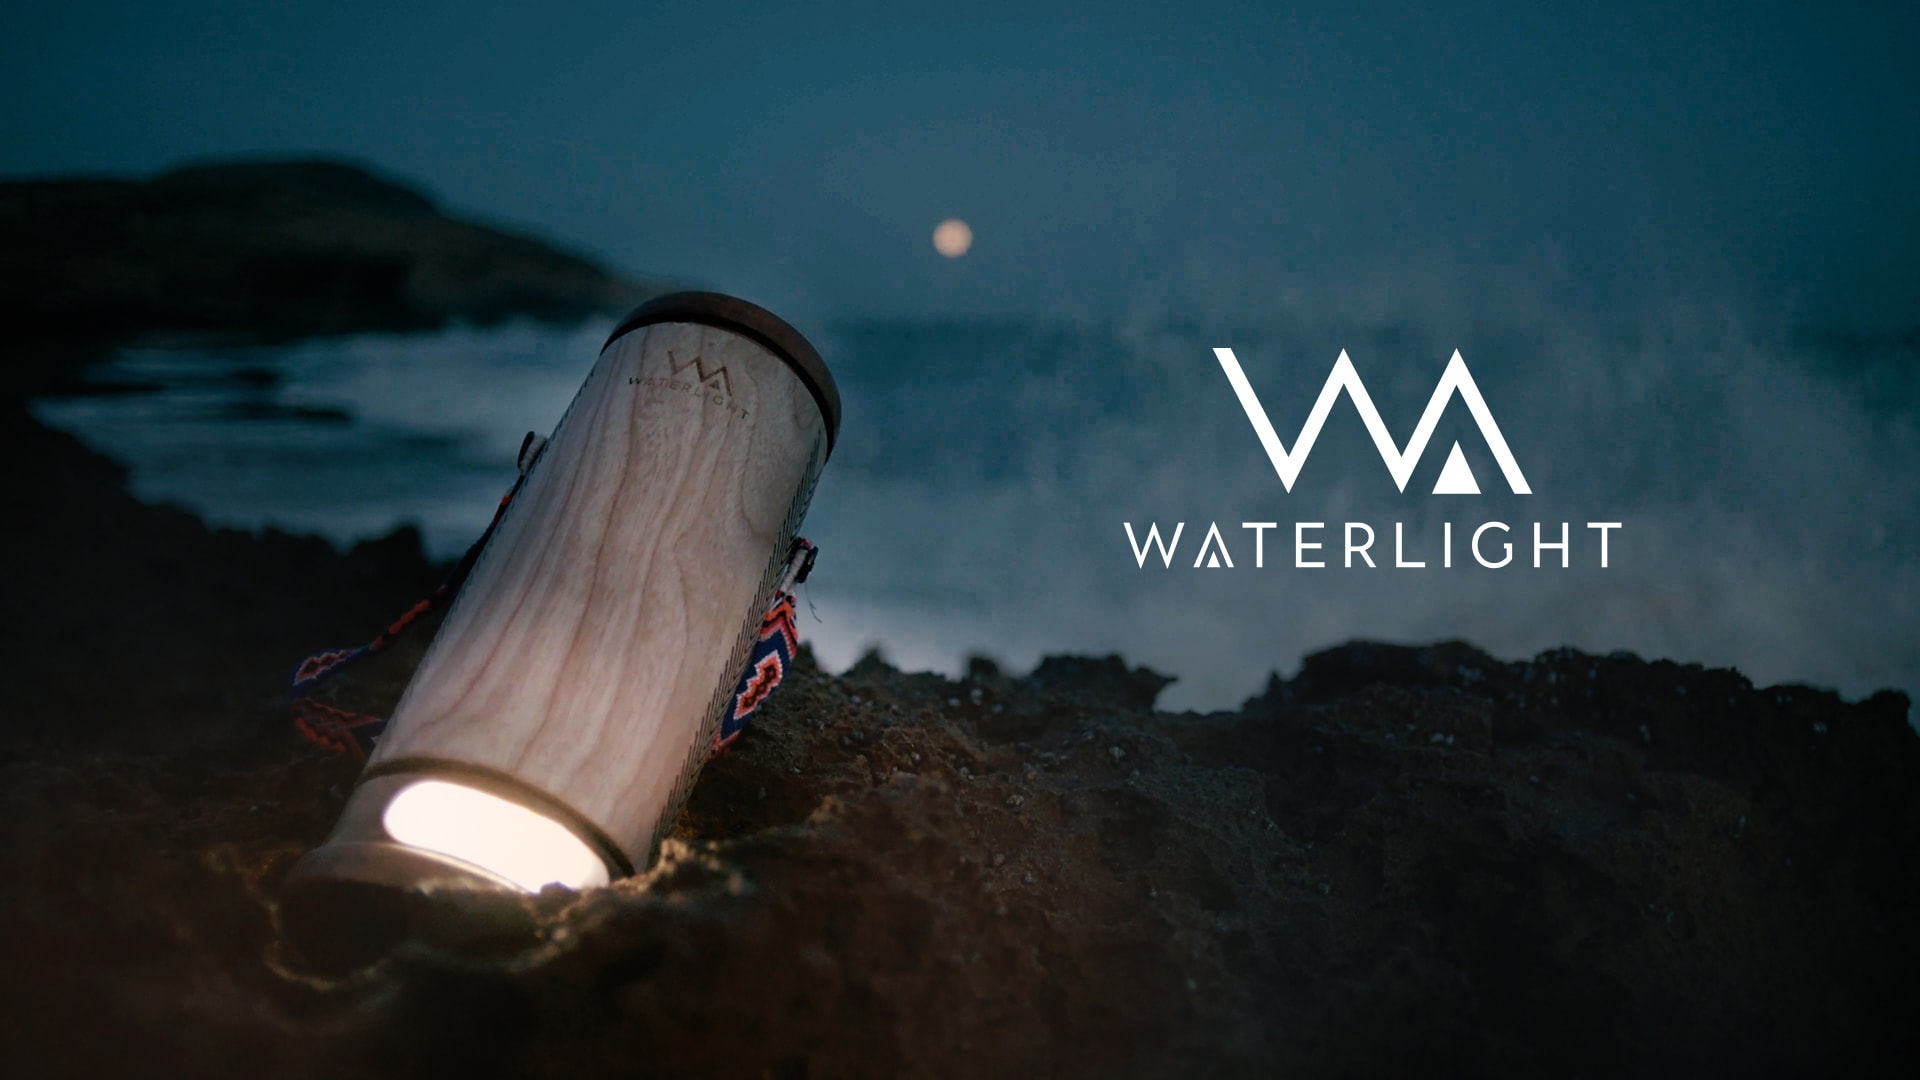 WaterLight at night